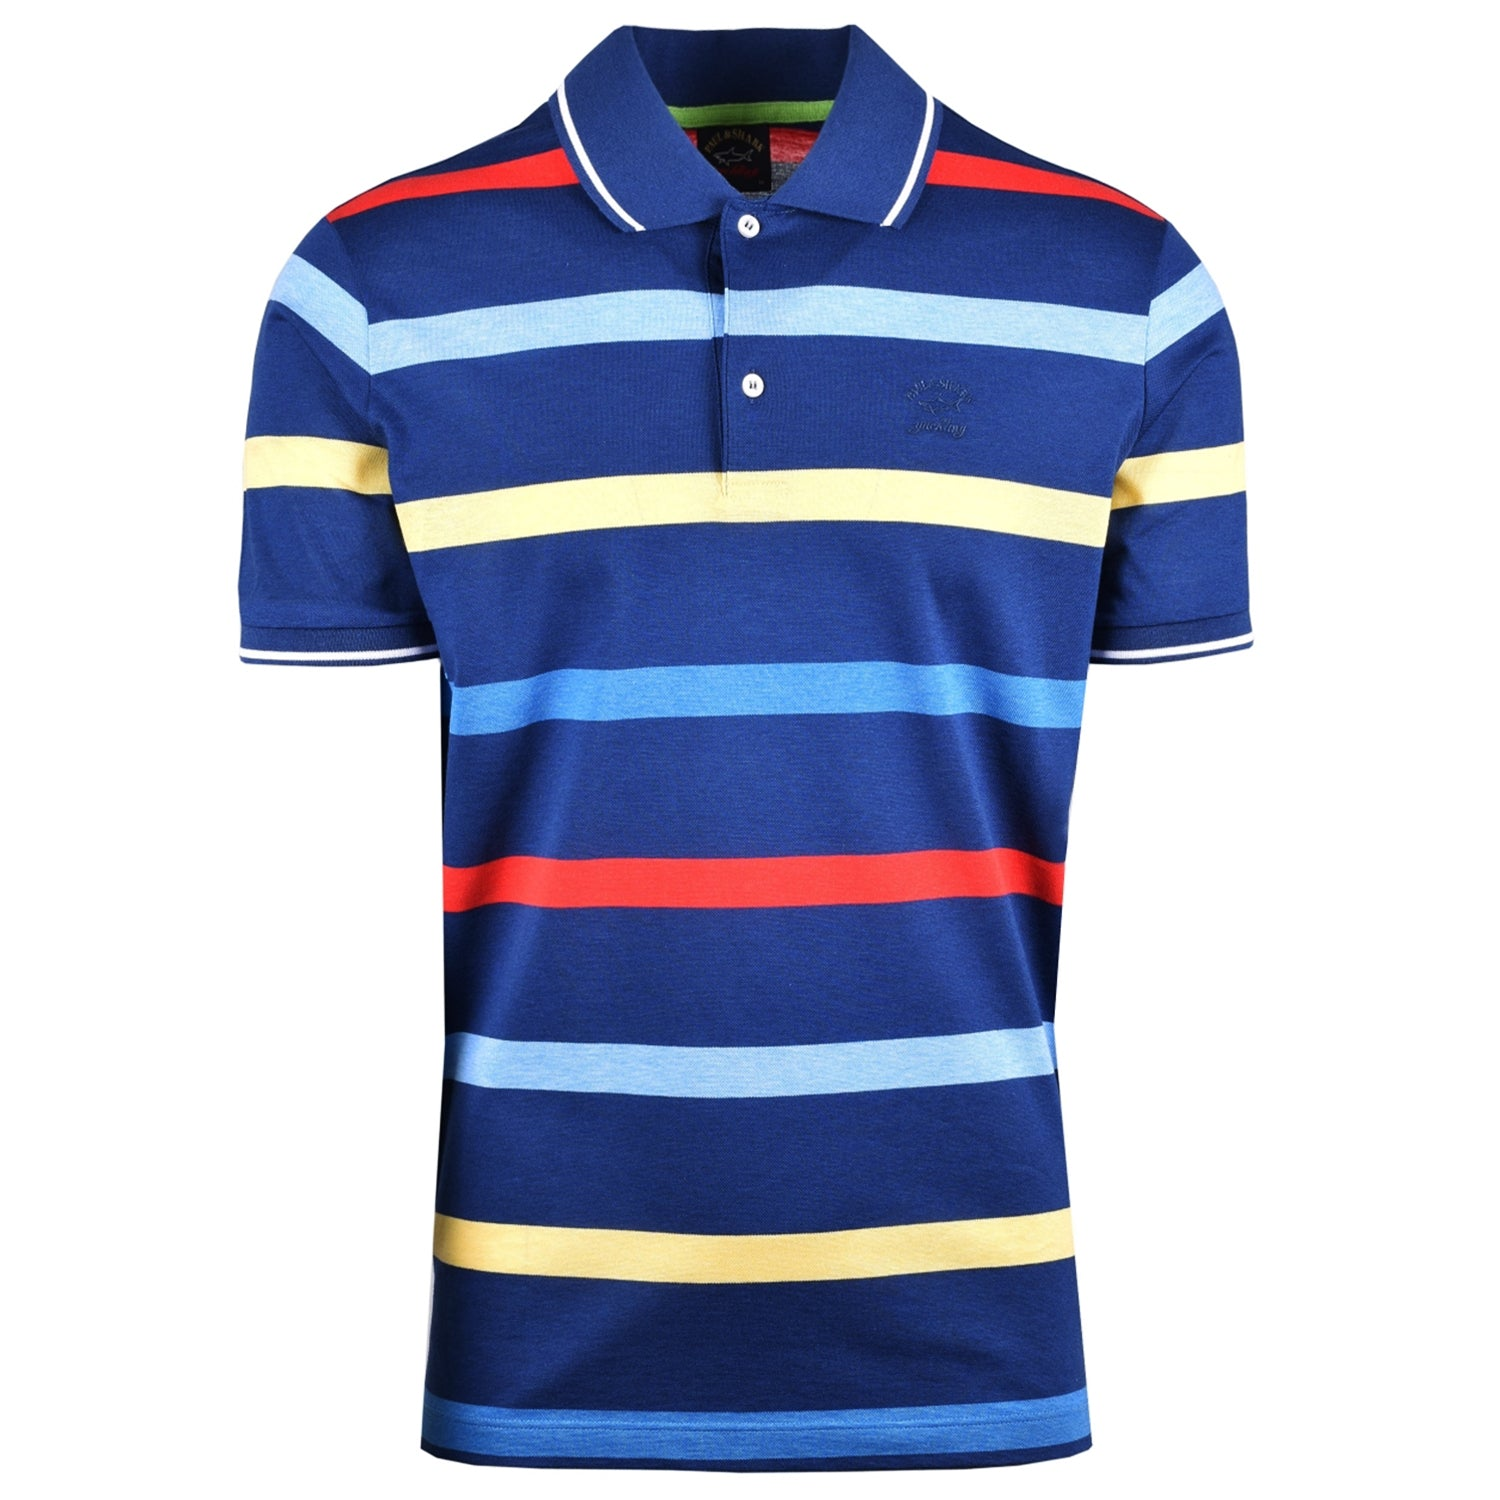 Paul & Shark Pique Cotton Striped Polo T-Shirt